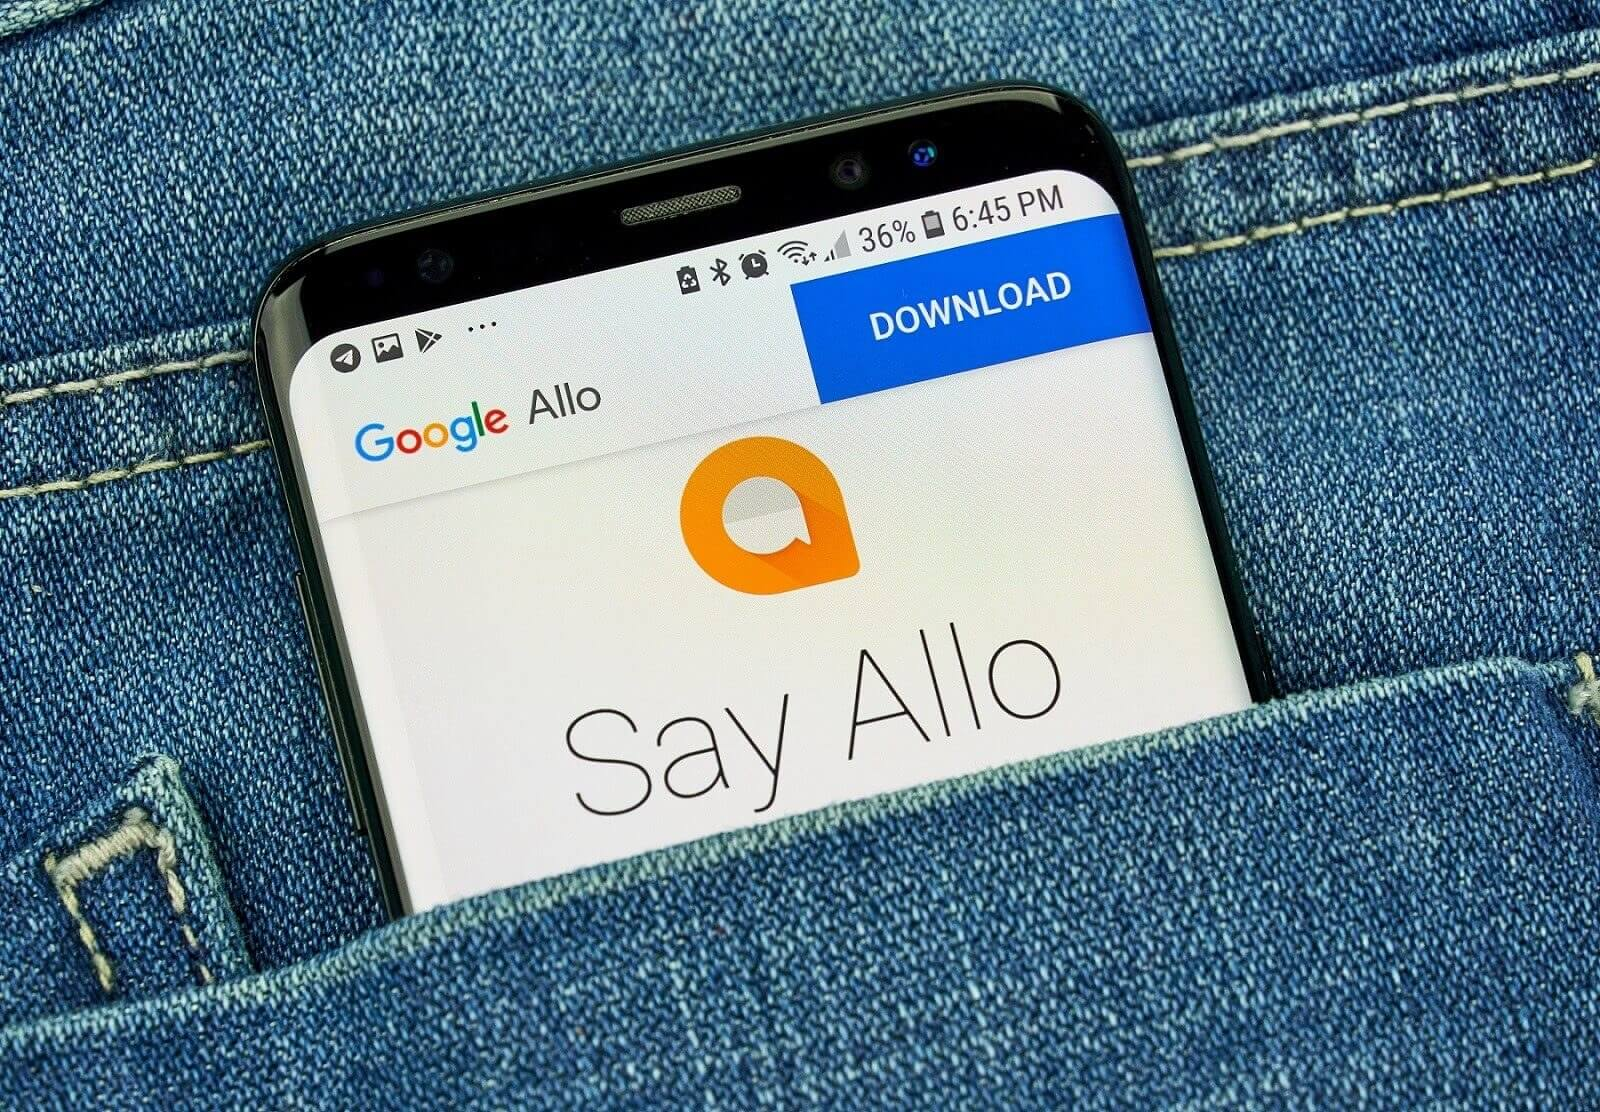 Google Allo Says